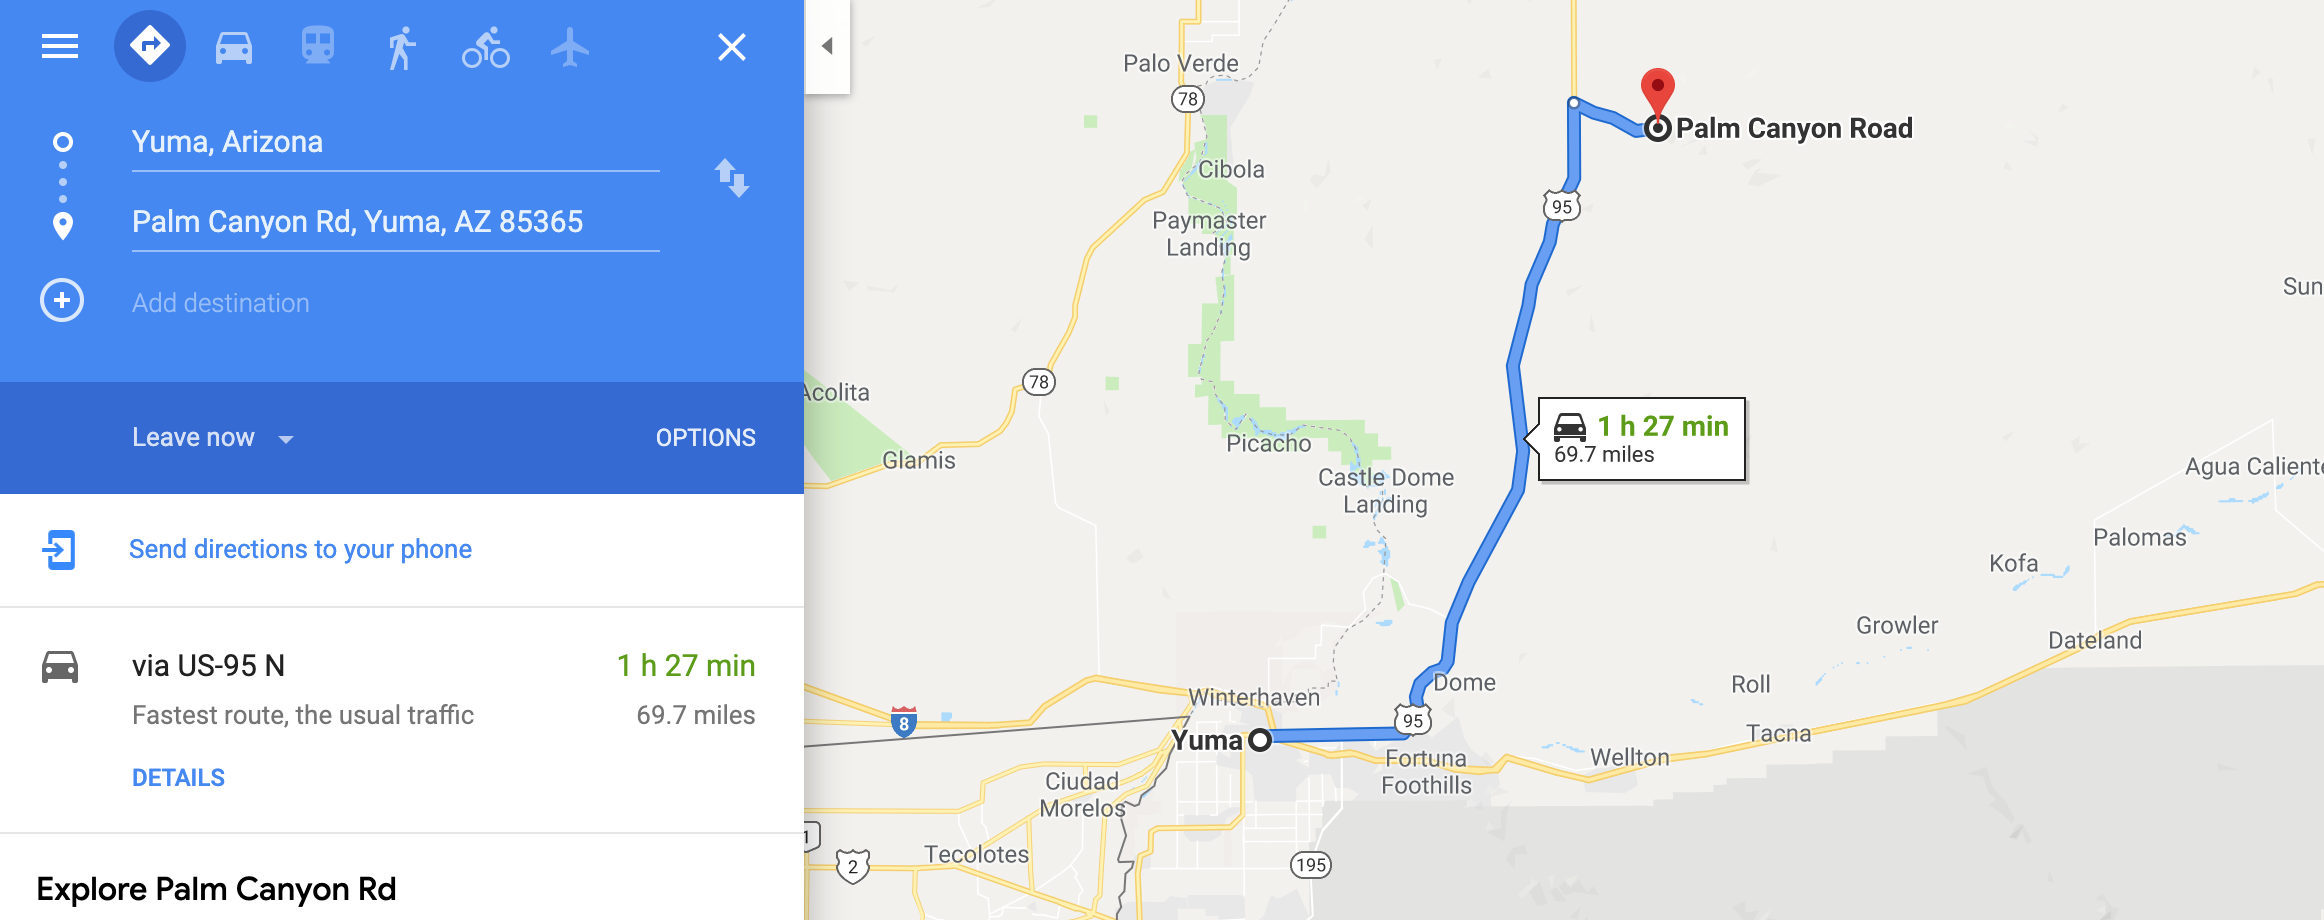 Directions to Camping Near Me